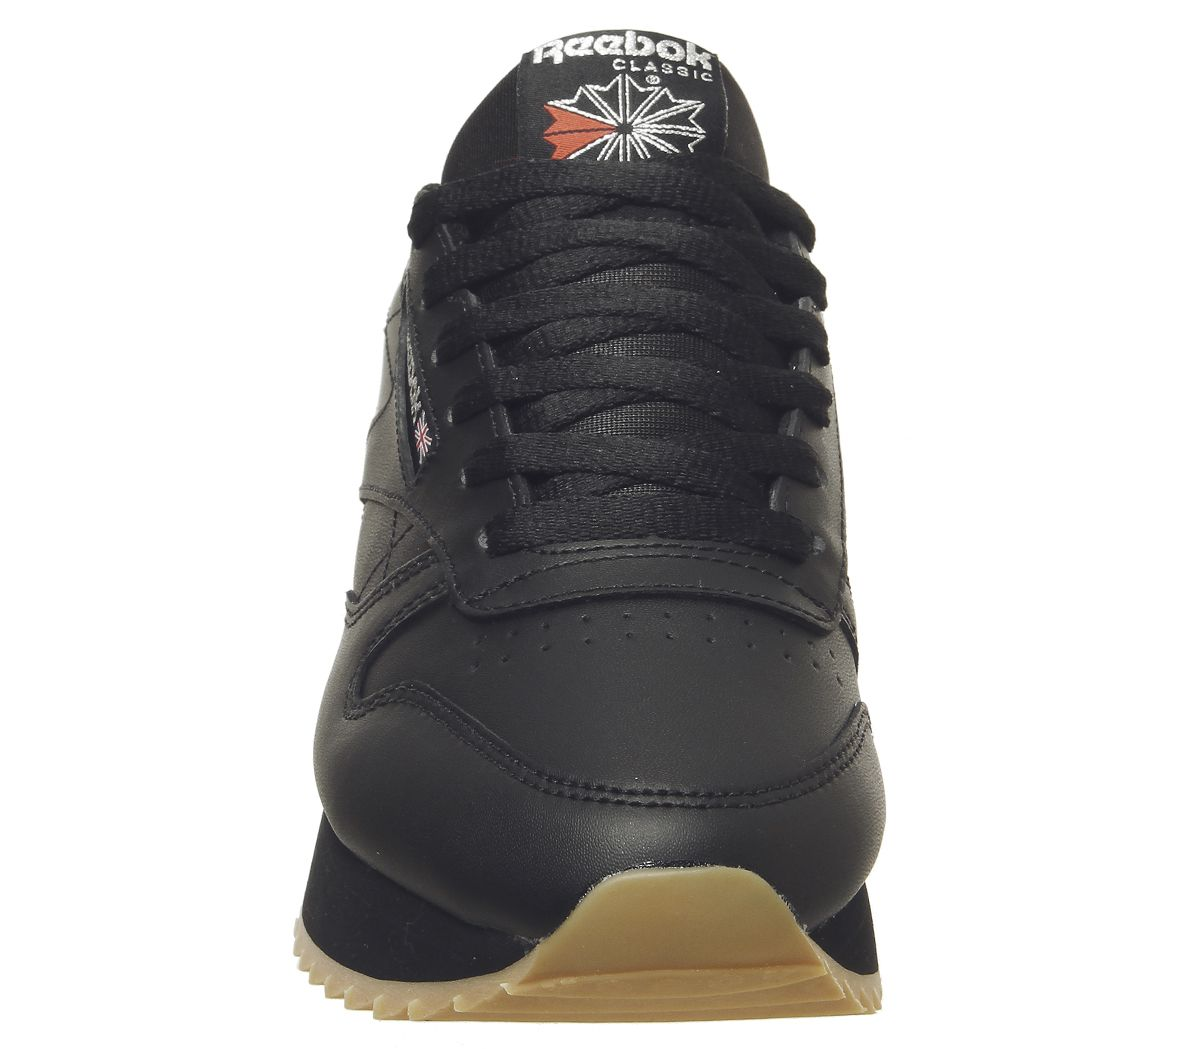 842c9074553 Sentinel Womens Reebok Classic Leather Double Trainers Black Gum Silver  Metallic Trainers